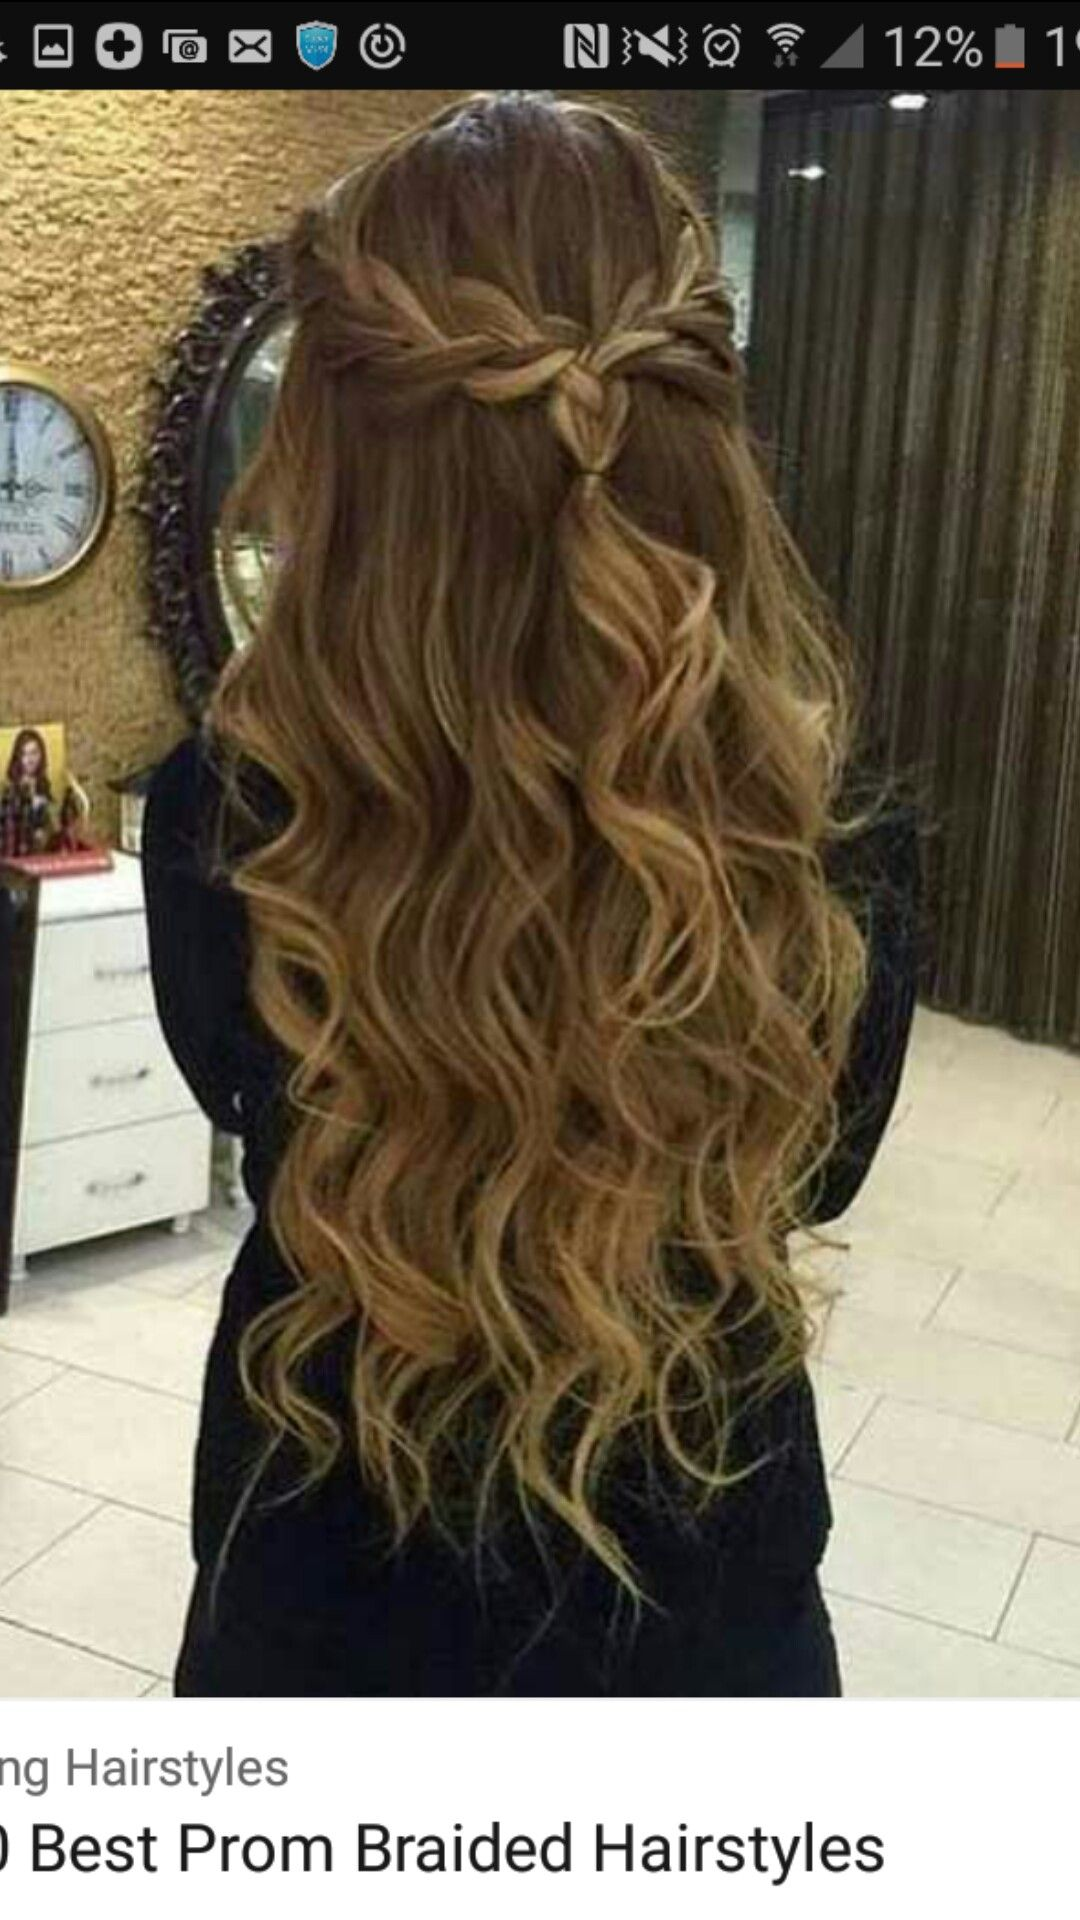 Pin by alexis hernandez on hair pinterest prom hair hair and